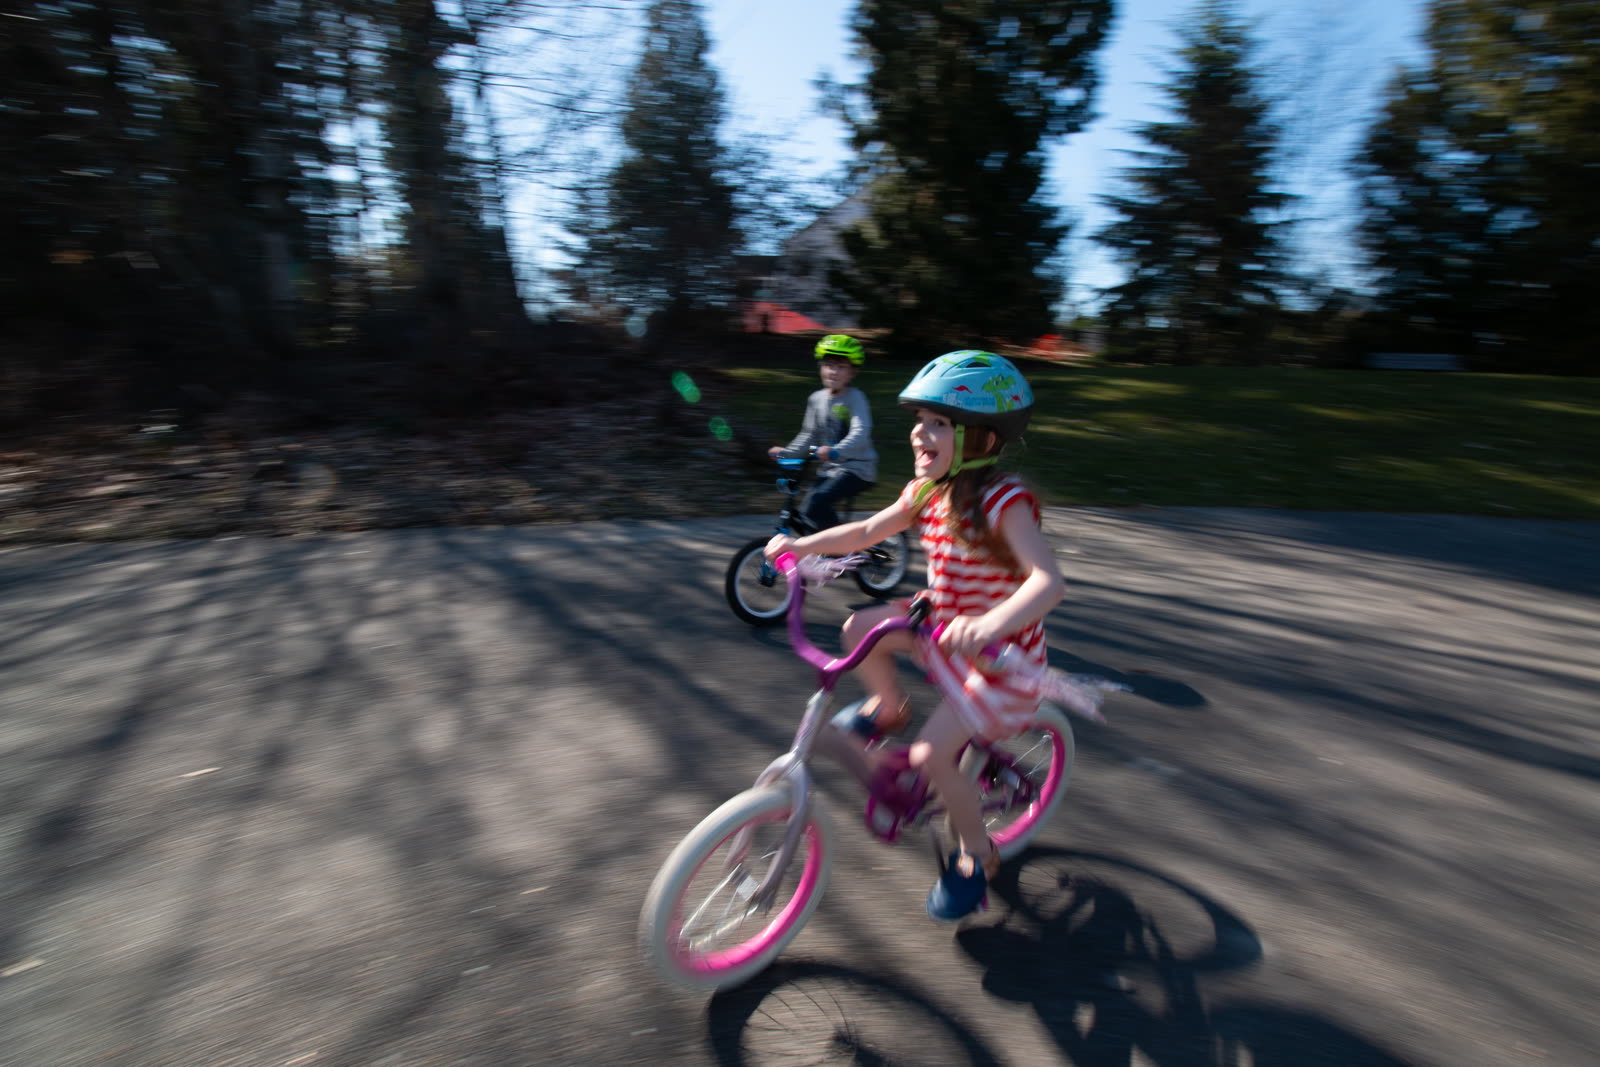 """This was Rosie's _third day_ on a pedal bike. She's absolutely crushing it. <a href=""""https://www.striderbikes.com/"""">Strider Bikes</a>, man — they totally work."""